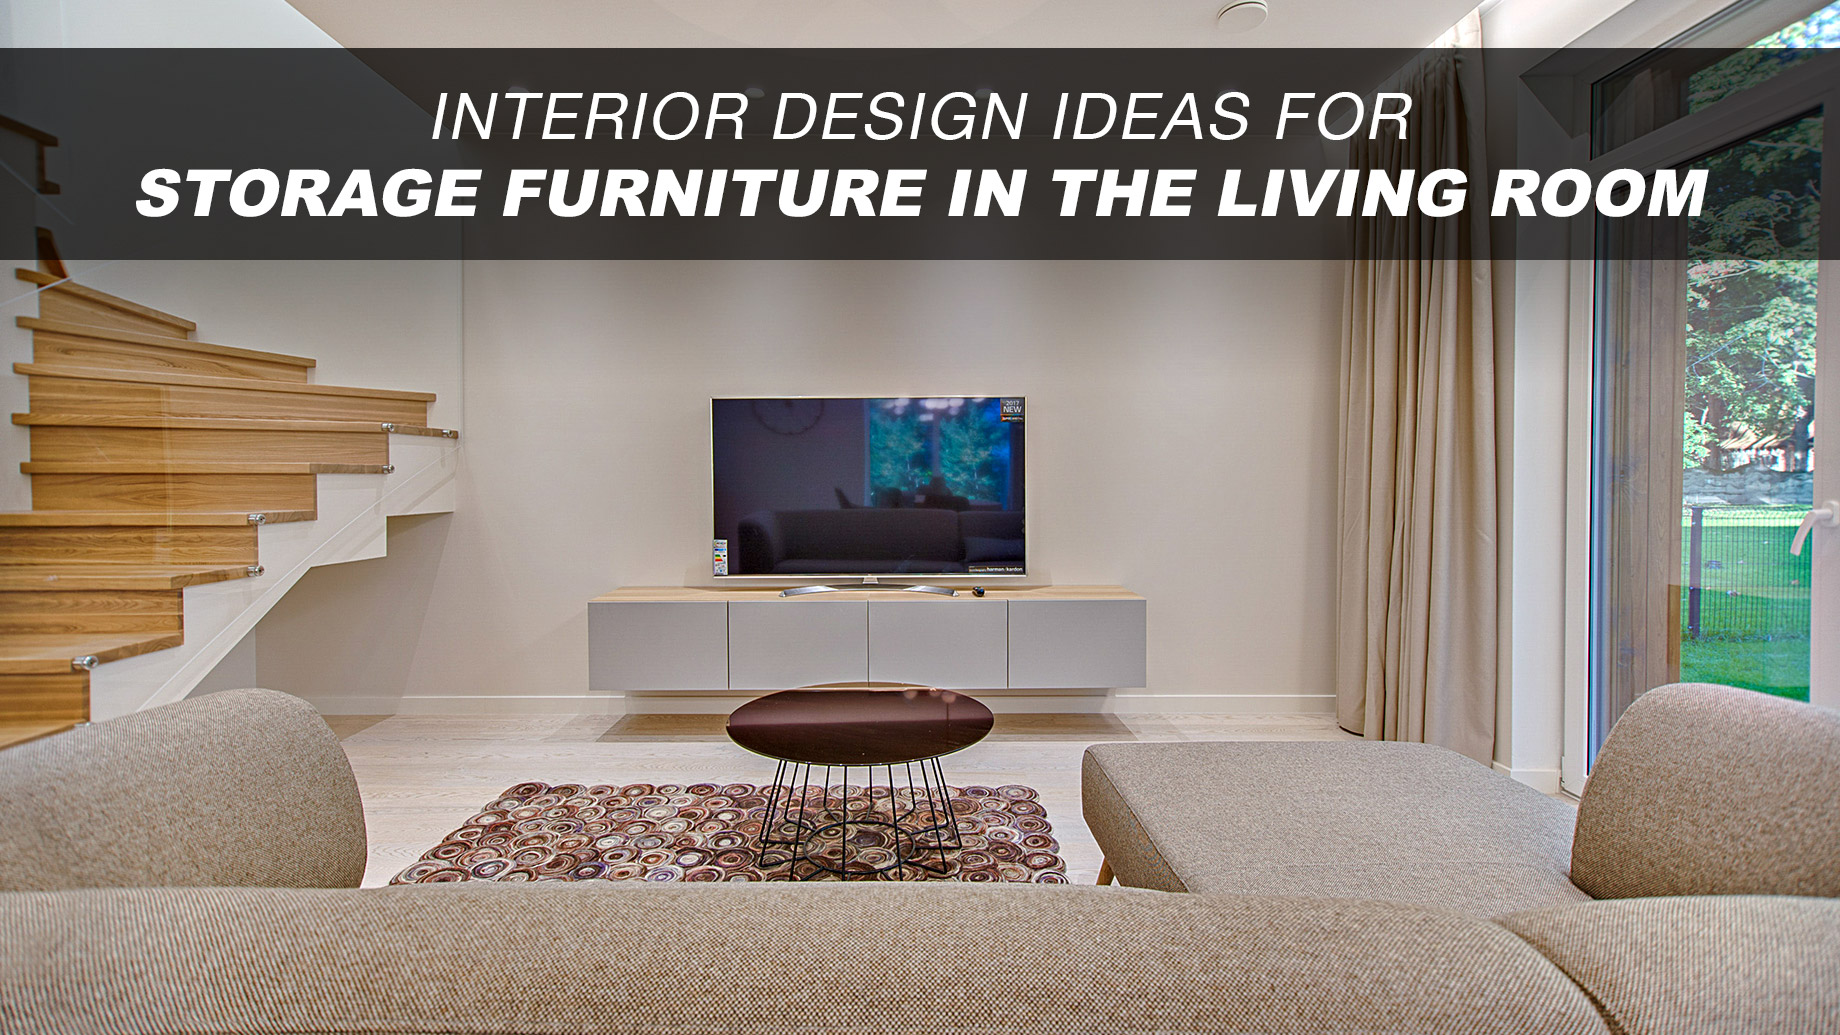 Interior Design Ideas For Storage Furniture In The Living Room